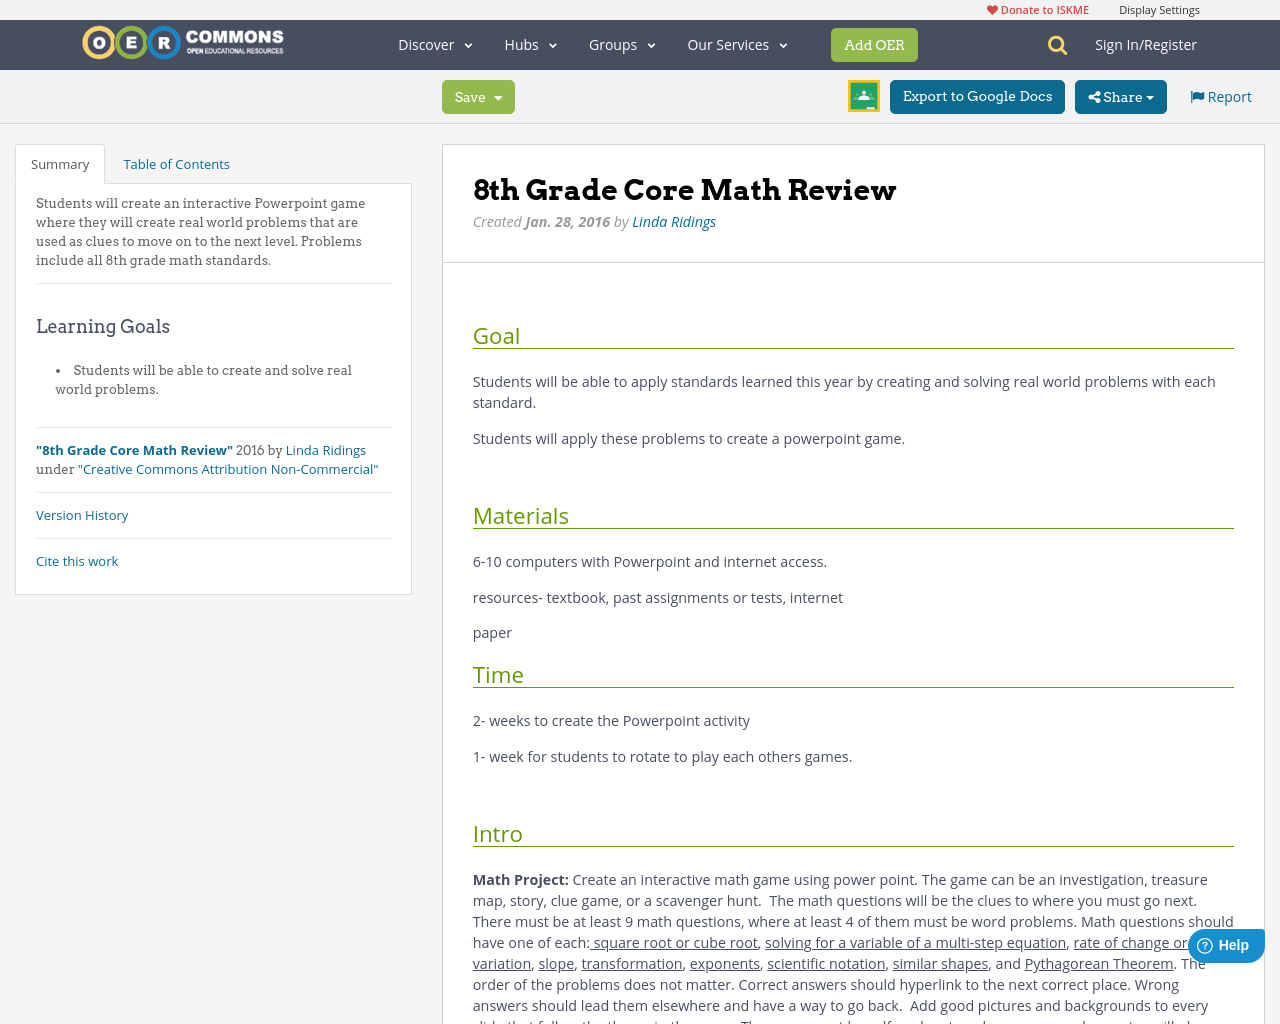 8th Grade Core Math Review | OER Commons